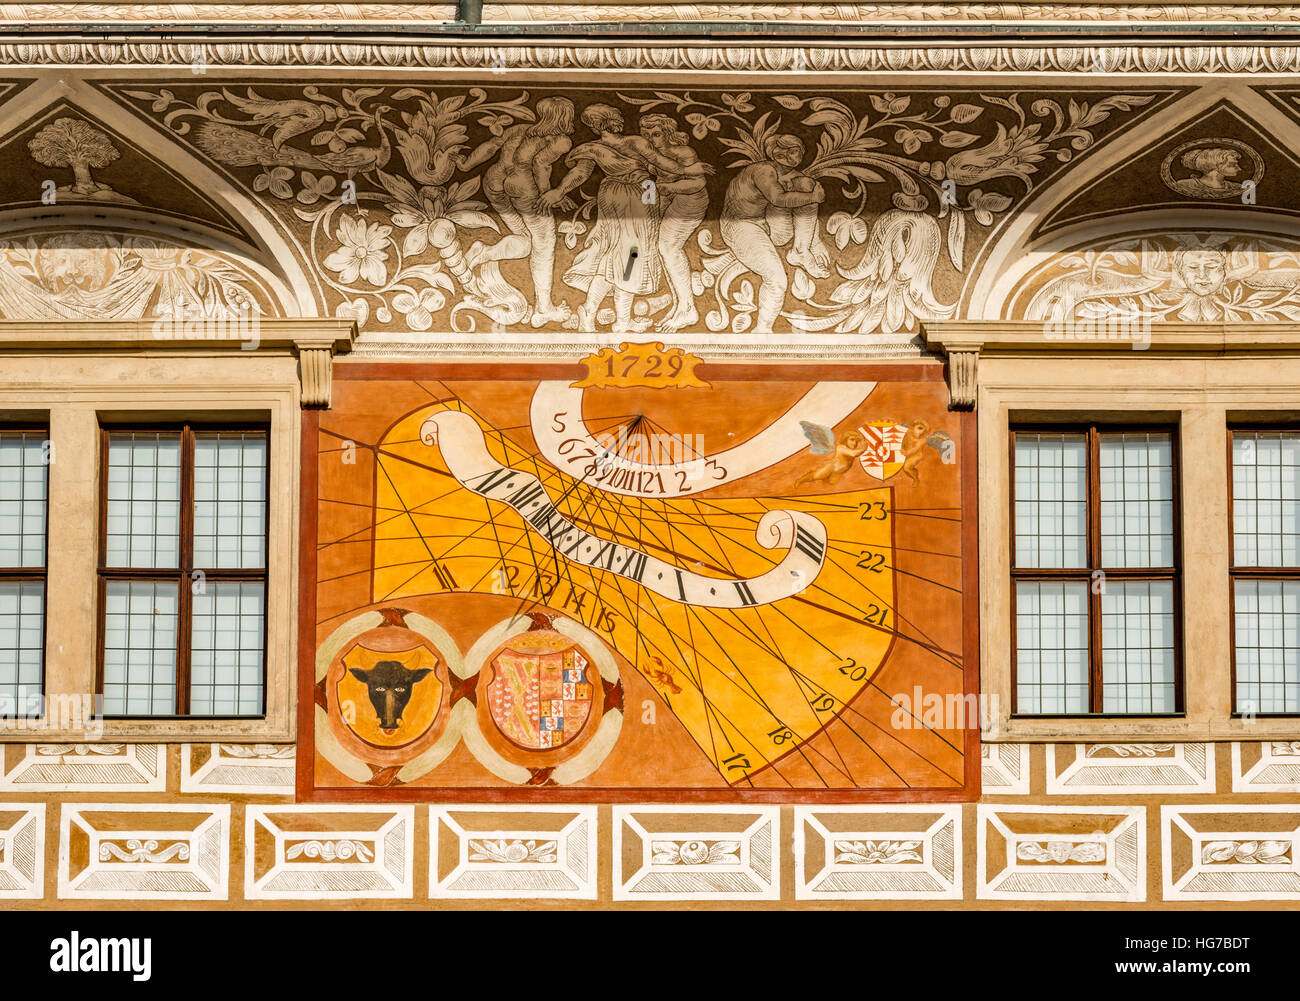 Sundial, sgraffito art work at Litomysl Castle, 16th century, Renaissance style, UNESCO World Heritage Site, in - Stock Image